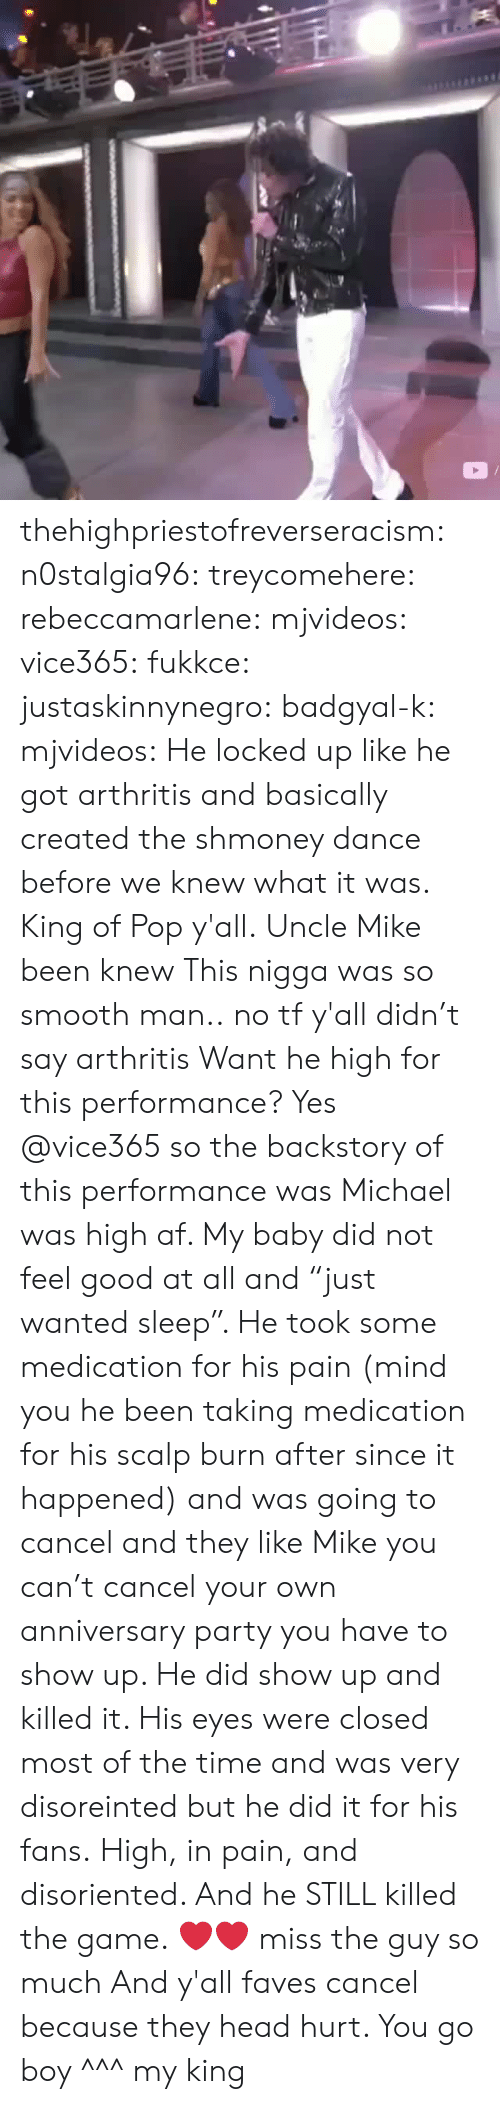 """disoriented: thehighpriestofreverseracism:  n0stalgia96:  treycomehere:  rebeccamarlene:   mjvideos:   vice365:   fukkce:   justaskinnynegro:   badgyal-k:  mjvideos:   He locked up like he got arthritis and basically created the shmoney dance before we knew what it was.   King of Pop y'all.   Uncle Mike been knew   This nigga was so smooth man..   no tf y'all didn't say arthritis   Want he high for this performance?   Yes @vice365 so the backstory of this performance was Michael was high af. My baby did not feel good at all and """"just wanted sleep"""". He took some medication for his pain (mind you he been taking medication for his scalp burn after since it happened)  and was going to cancel and they like Mike you can't cancel your own anniversary party you have to show up. He did show up and killed it. His eyes were closed most of the time and was very disoreinted but he did it for his fans.   High, in pain, and disoriented. And he STILL killed the game. ❤❤ miss the guy so much   And y'all faves cancel because they head hurt. You go boy  ^^^  my king"""